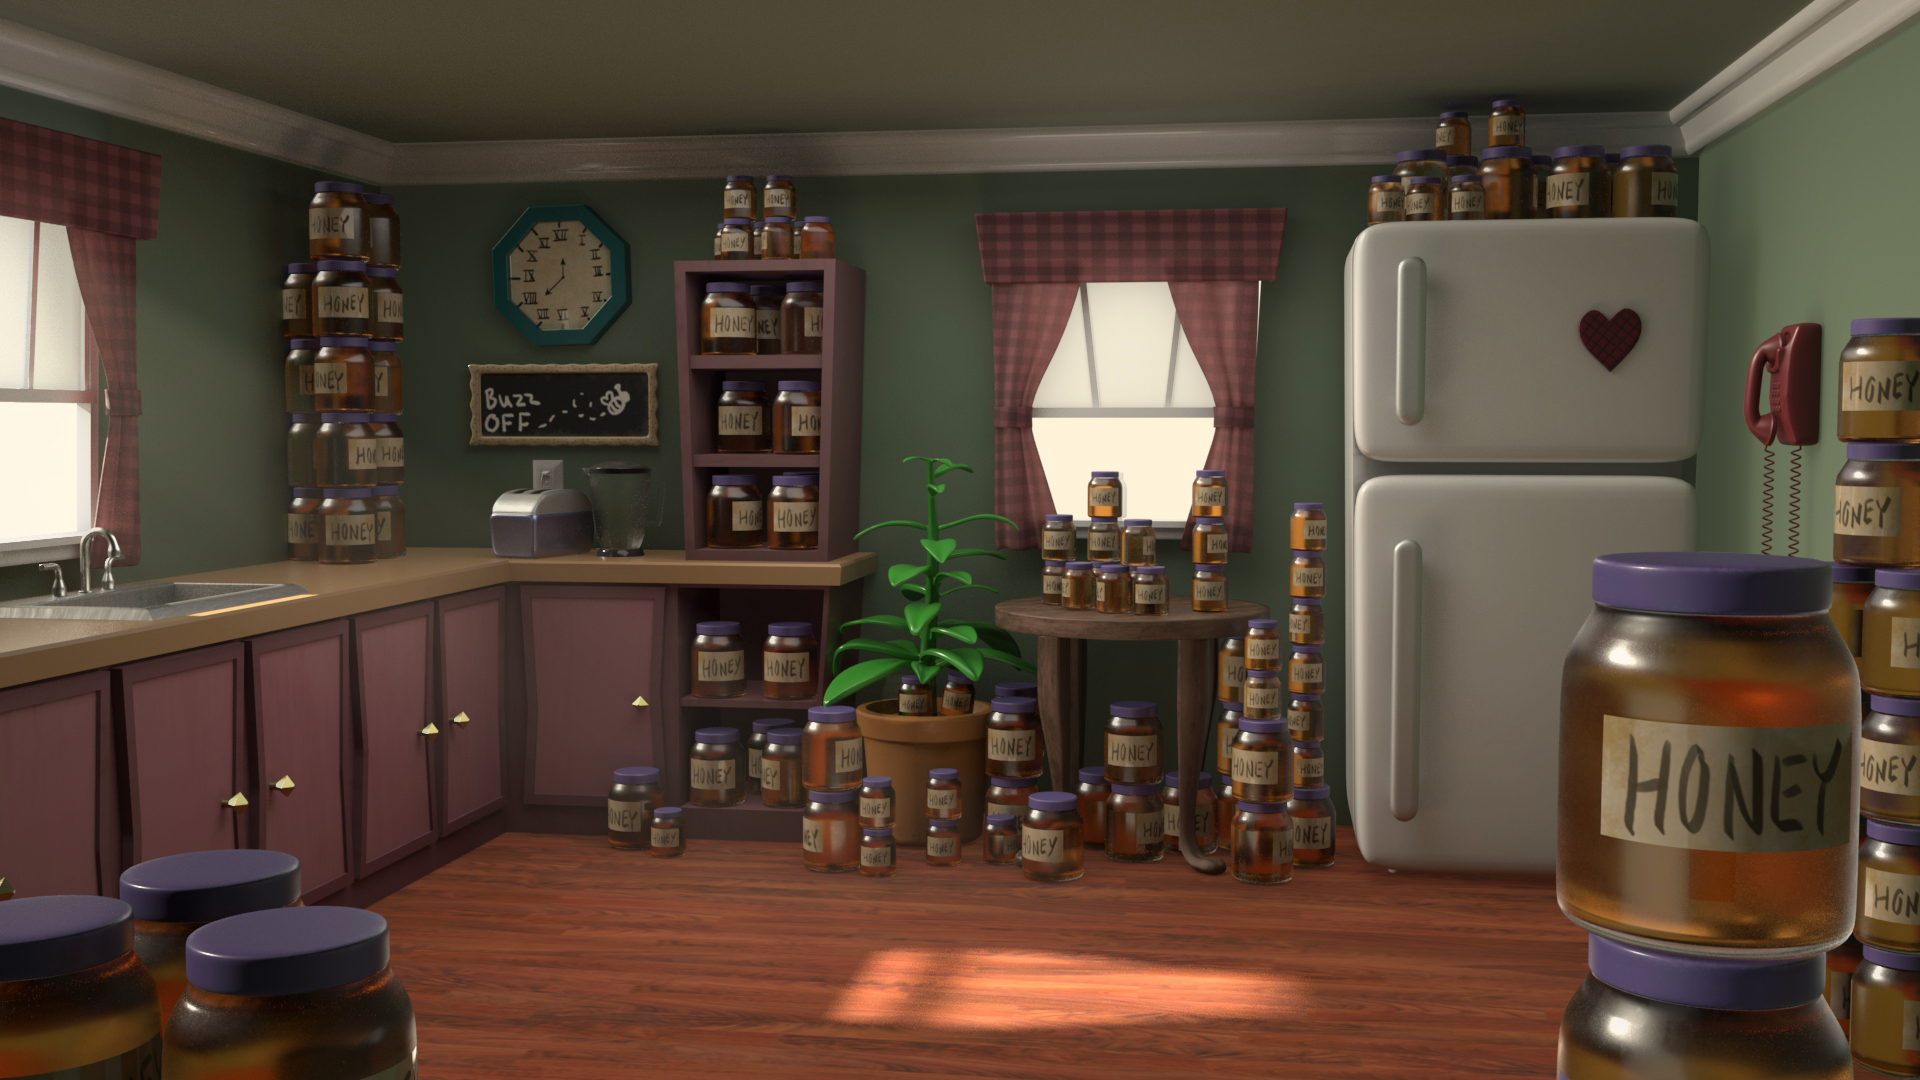 The Neighbor's Kitchen is one of the environments I have been hired as a freelance artist to model and texture for Northlight Production's upcoming animated short 'Cupcake'.